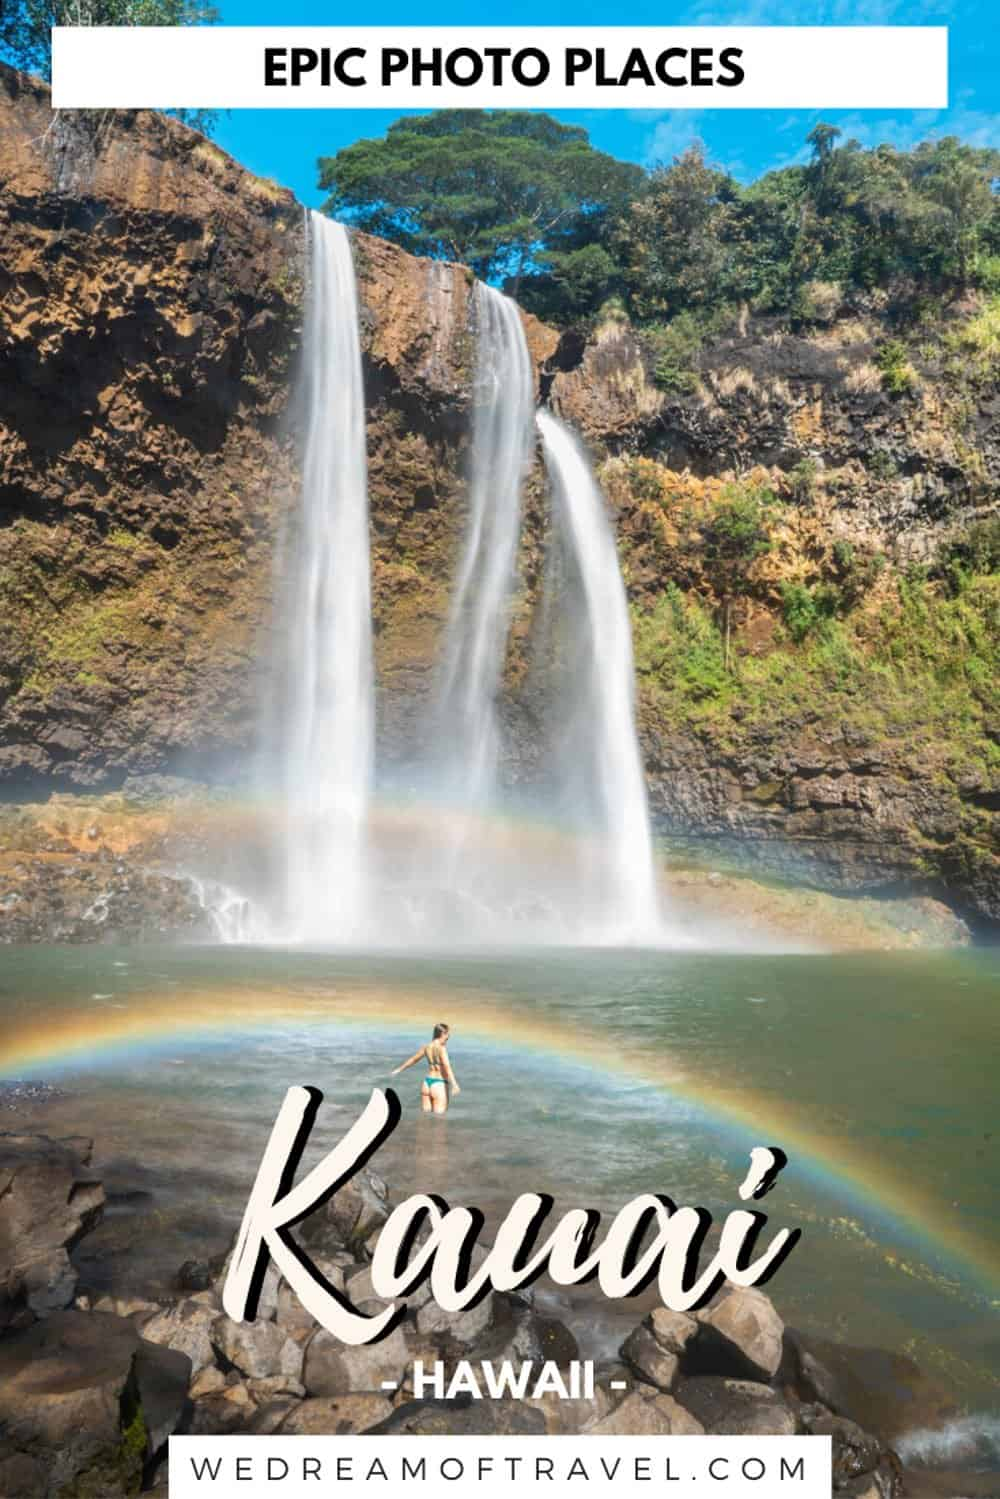 Discover the most epic photography locations in Kauai Hawaii. From secret beaches to the rugged Na Pali coast, lush landscapes and spectacular waterfalls, this Kauai photography guide has it all. #kauaihawaii #hawaii #photography